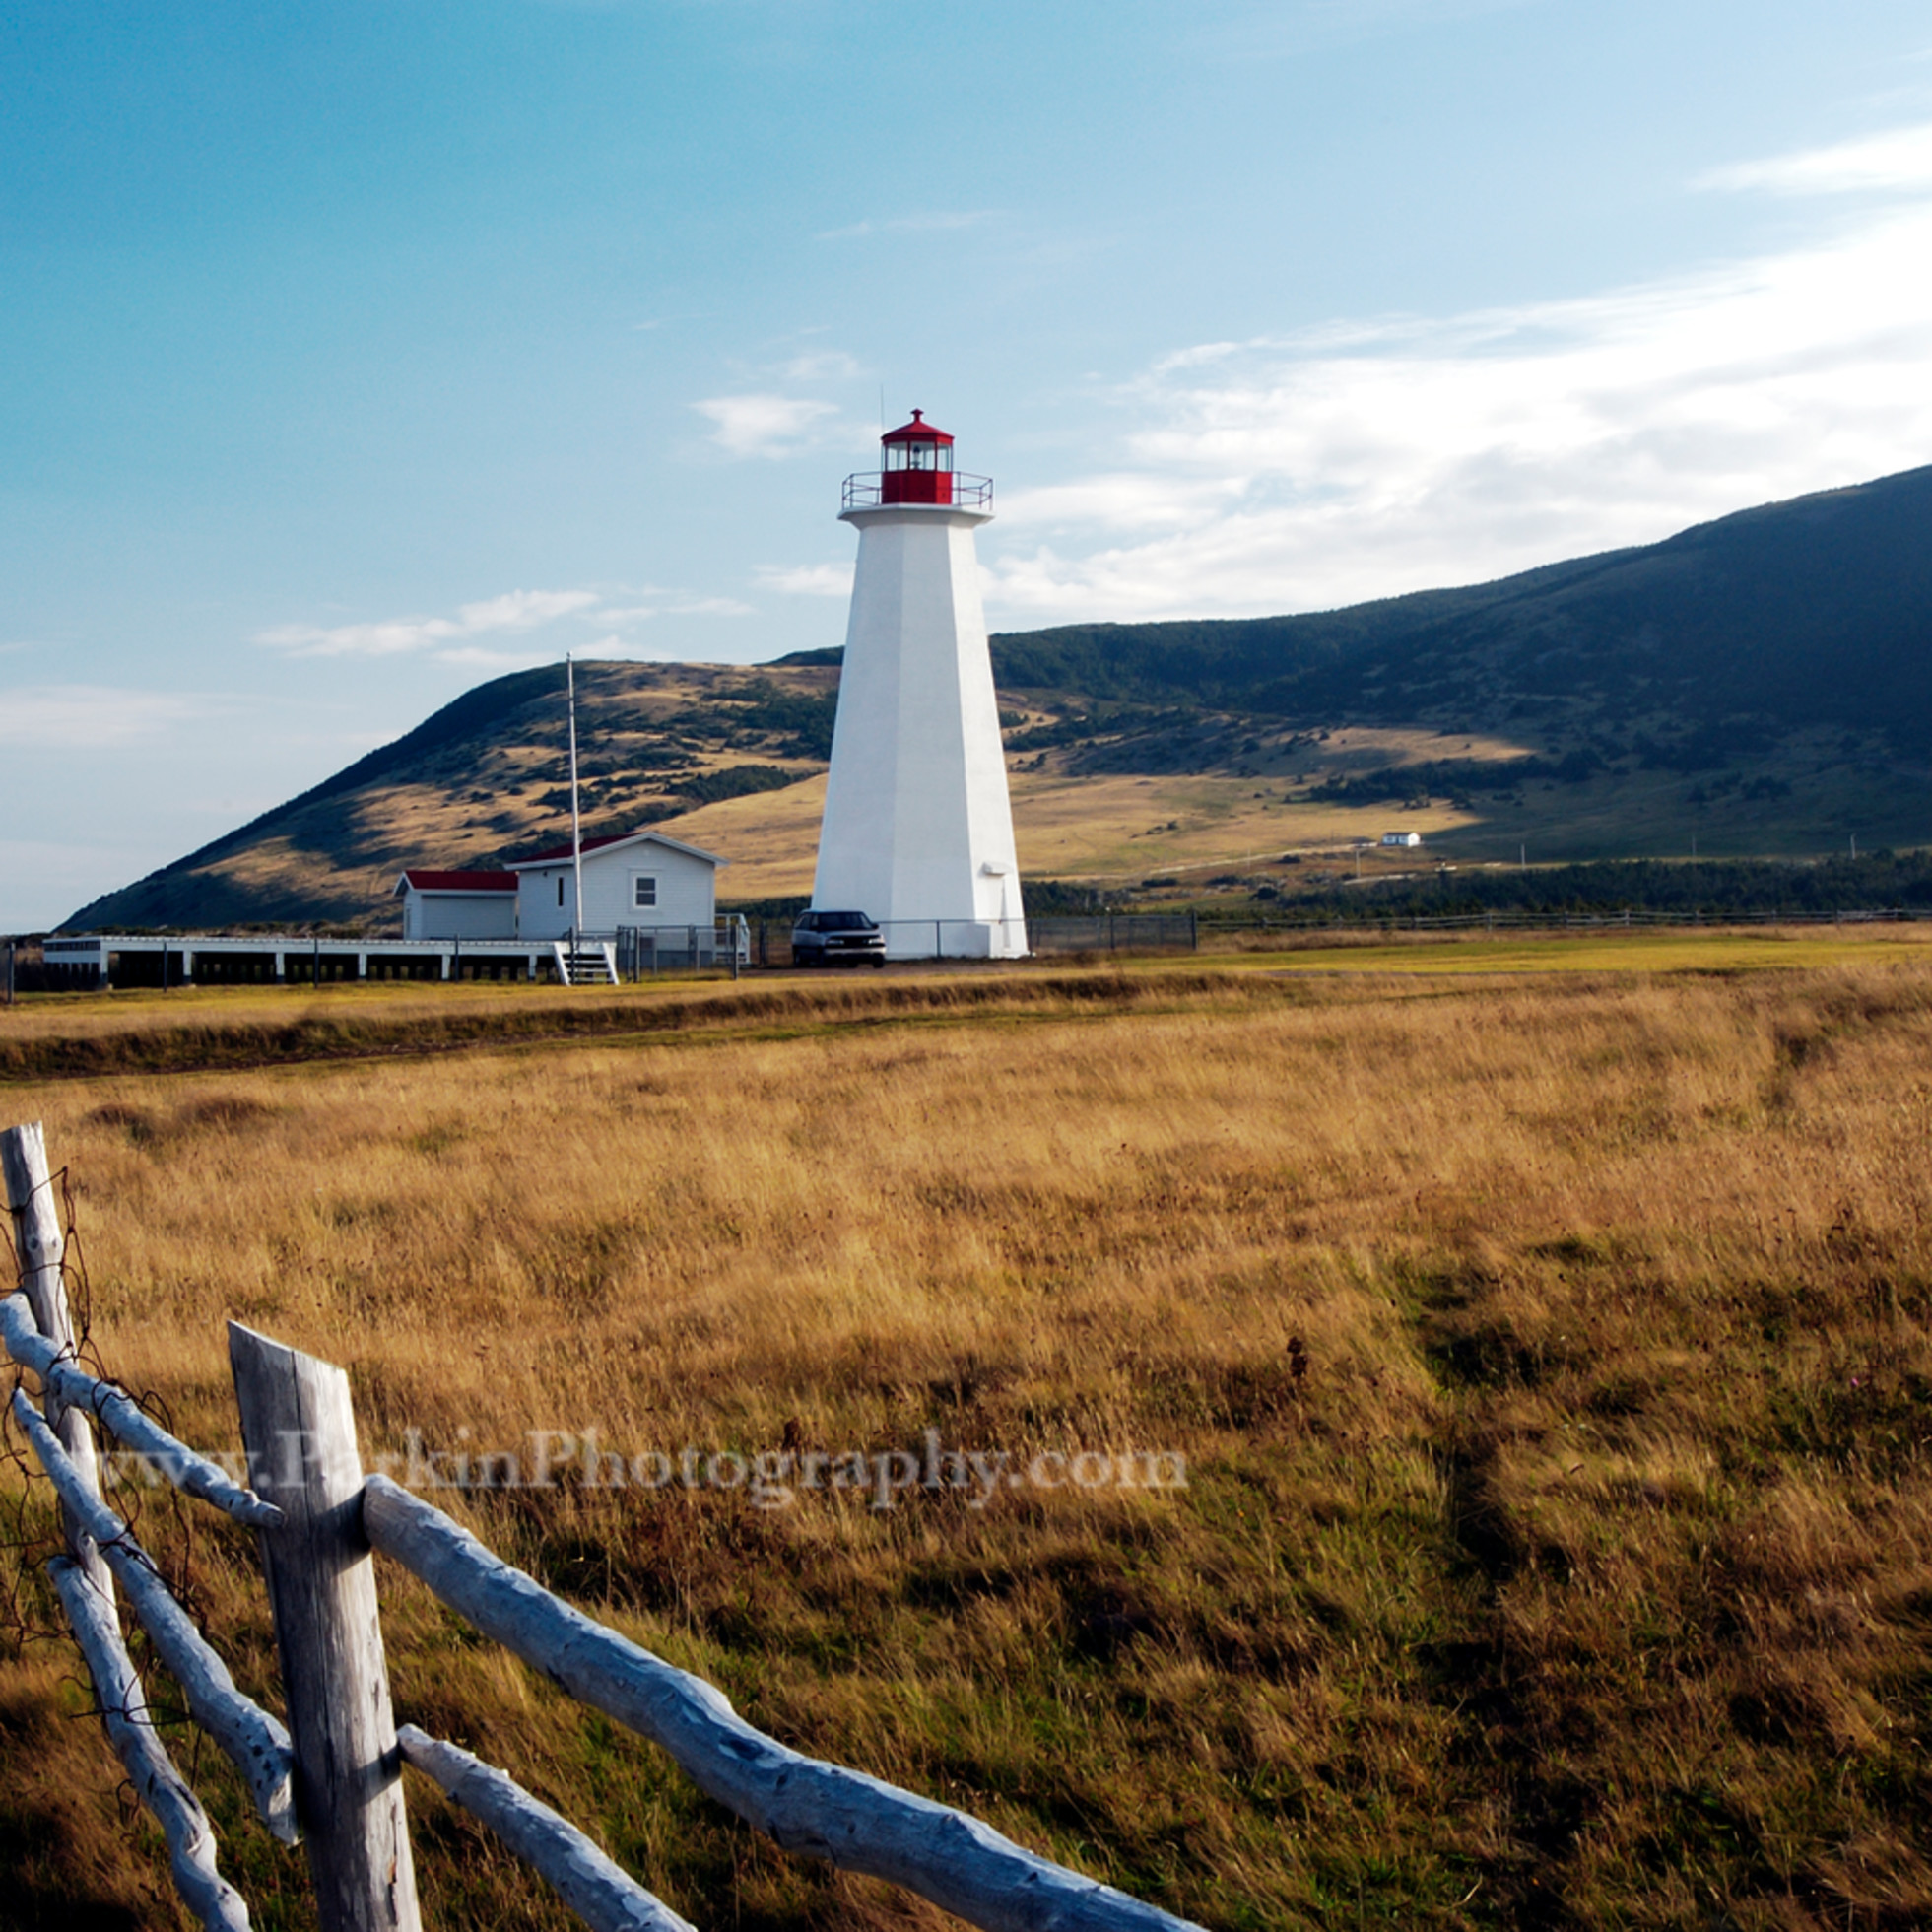 Cape anquille lighthouse 4 asf ab1qtl